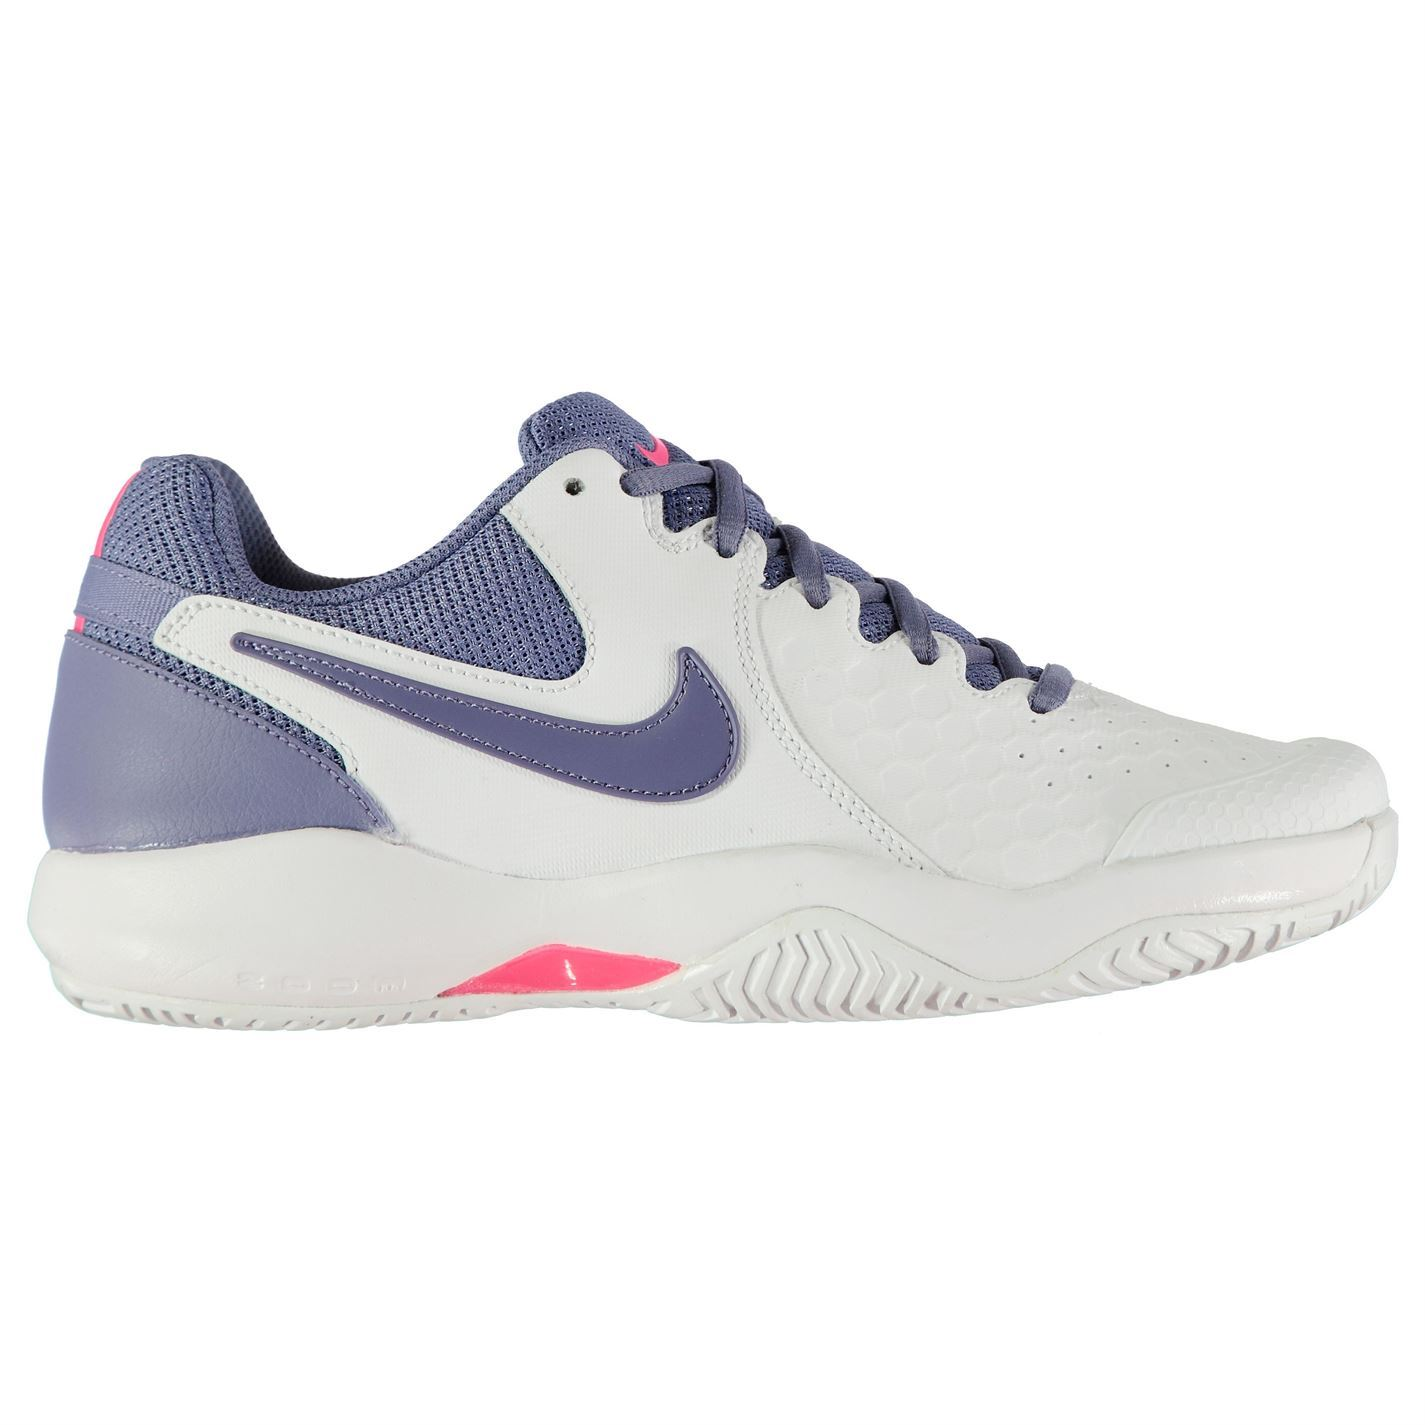 separation shoes e0119 ac9d1 Details about Nike Air Zoom Resistance Tennis Shoes Womens White Purp Court  Trainers Sneakers